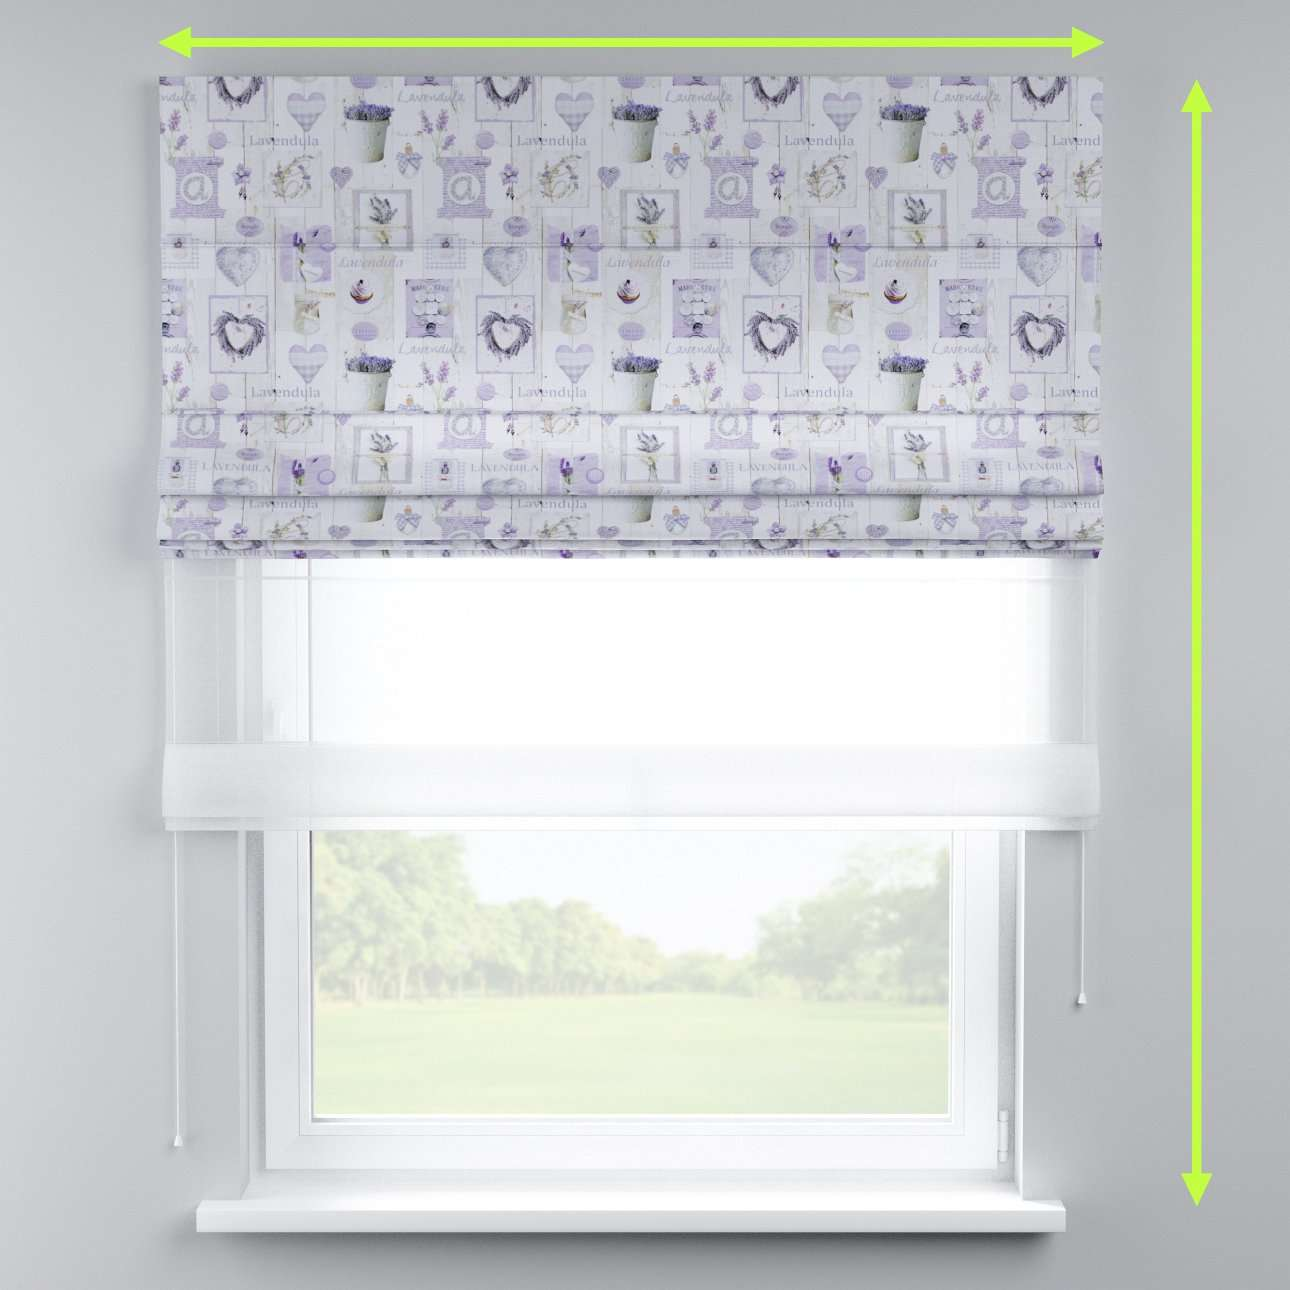 Voile and fabric roman blind (DUO II) in collection Ashley, fabric: 140-18